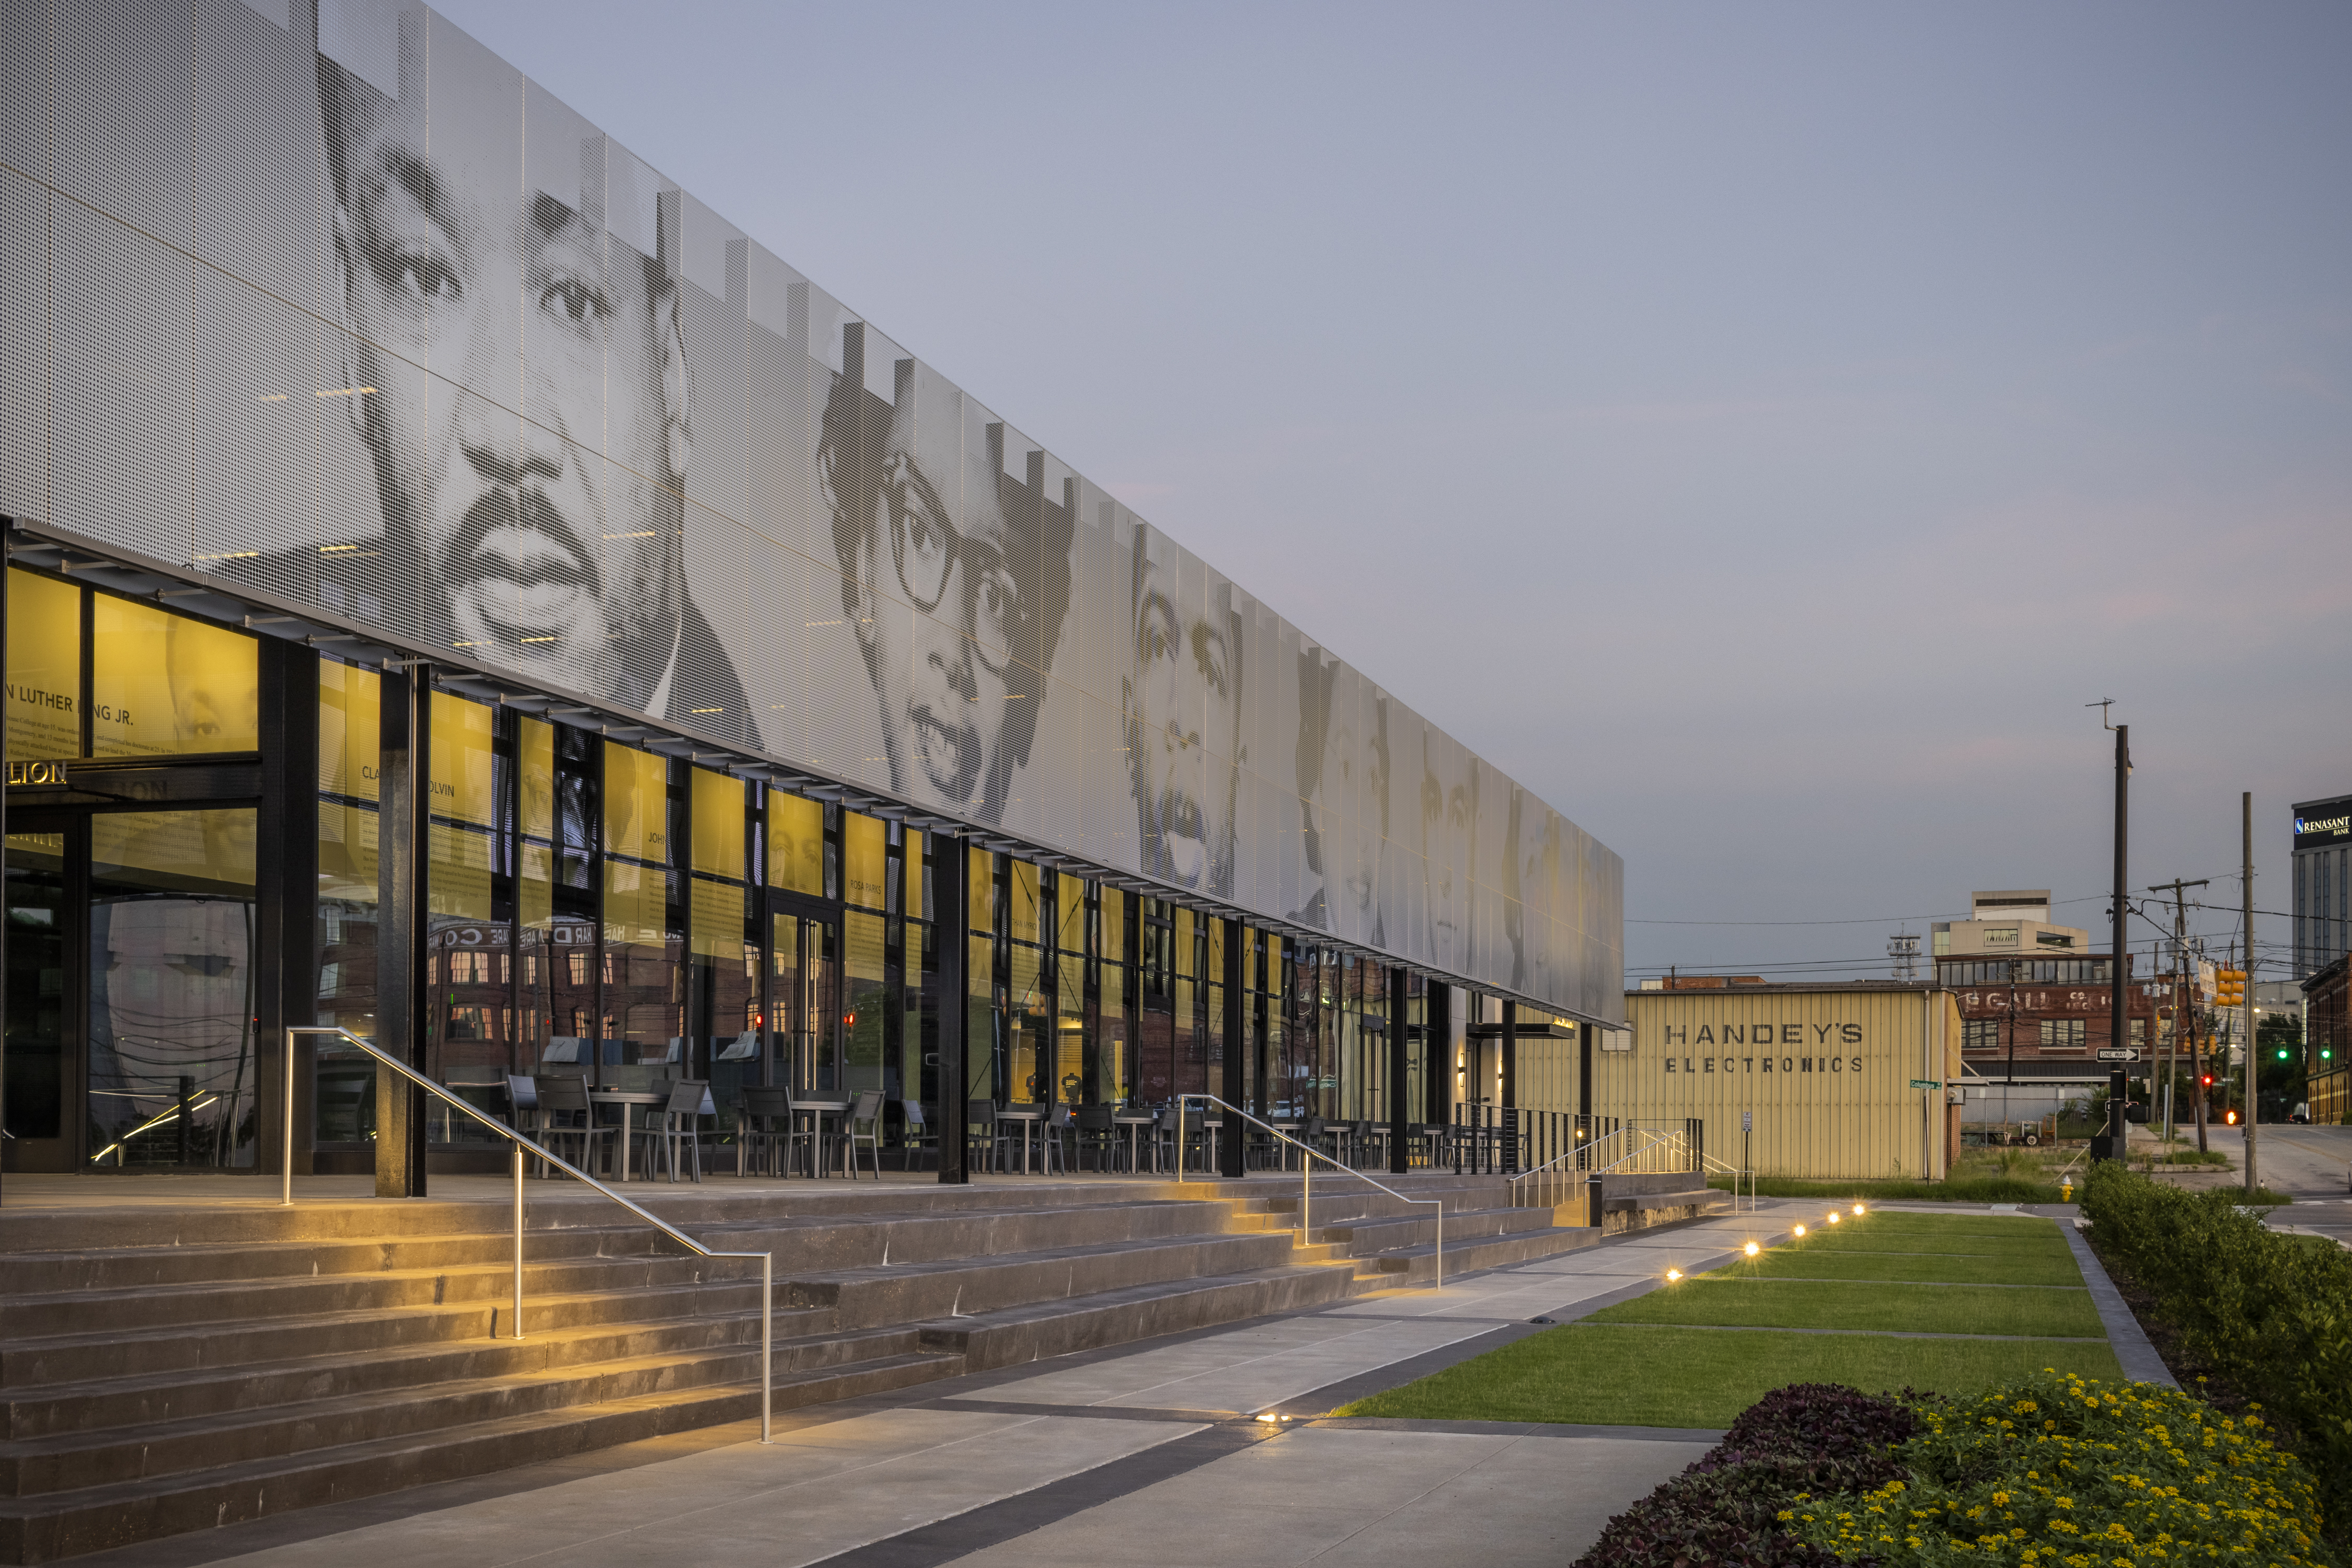 The iconic figures depicted on the EJI Legacy Pavilion ImageWall include Martin Luther King Jr., Claudette Colvin, John Lewis, Rosa Parks, Jonathan Daniels, Jo Ann Robinson, and E.D.